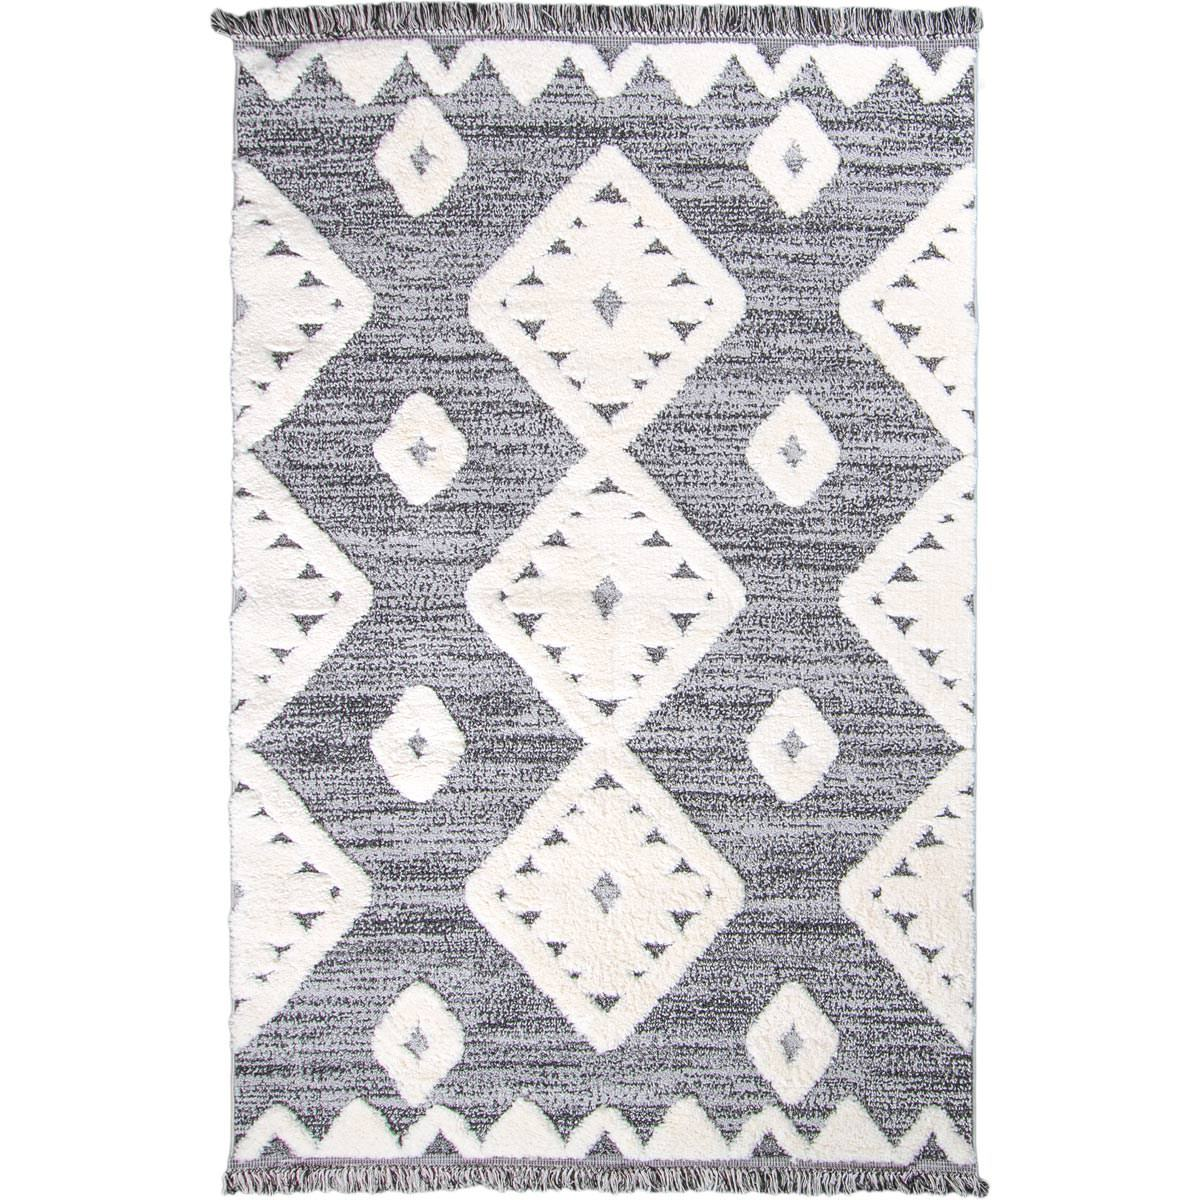 Atlas Rug 07 Grey - Fringes 1